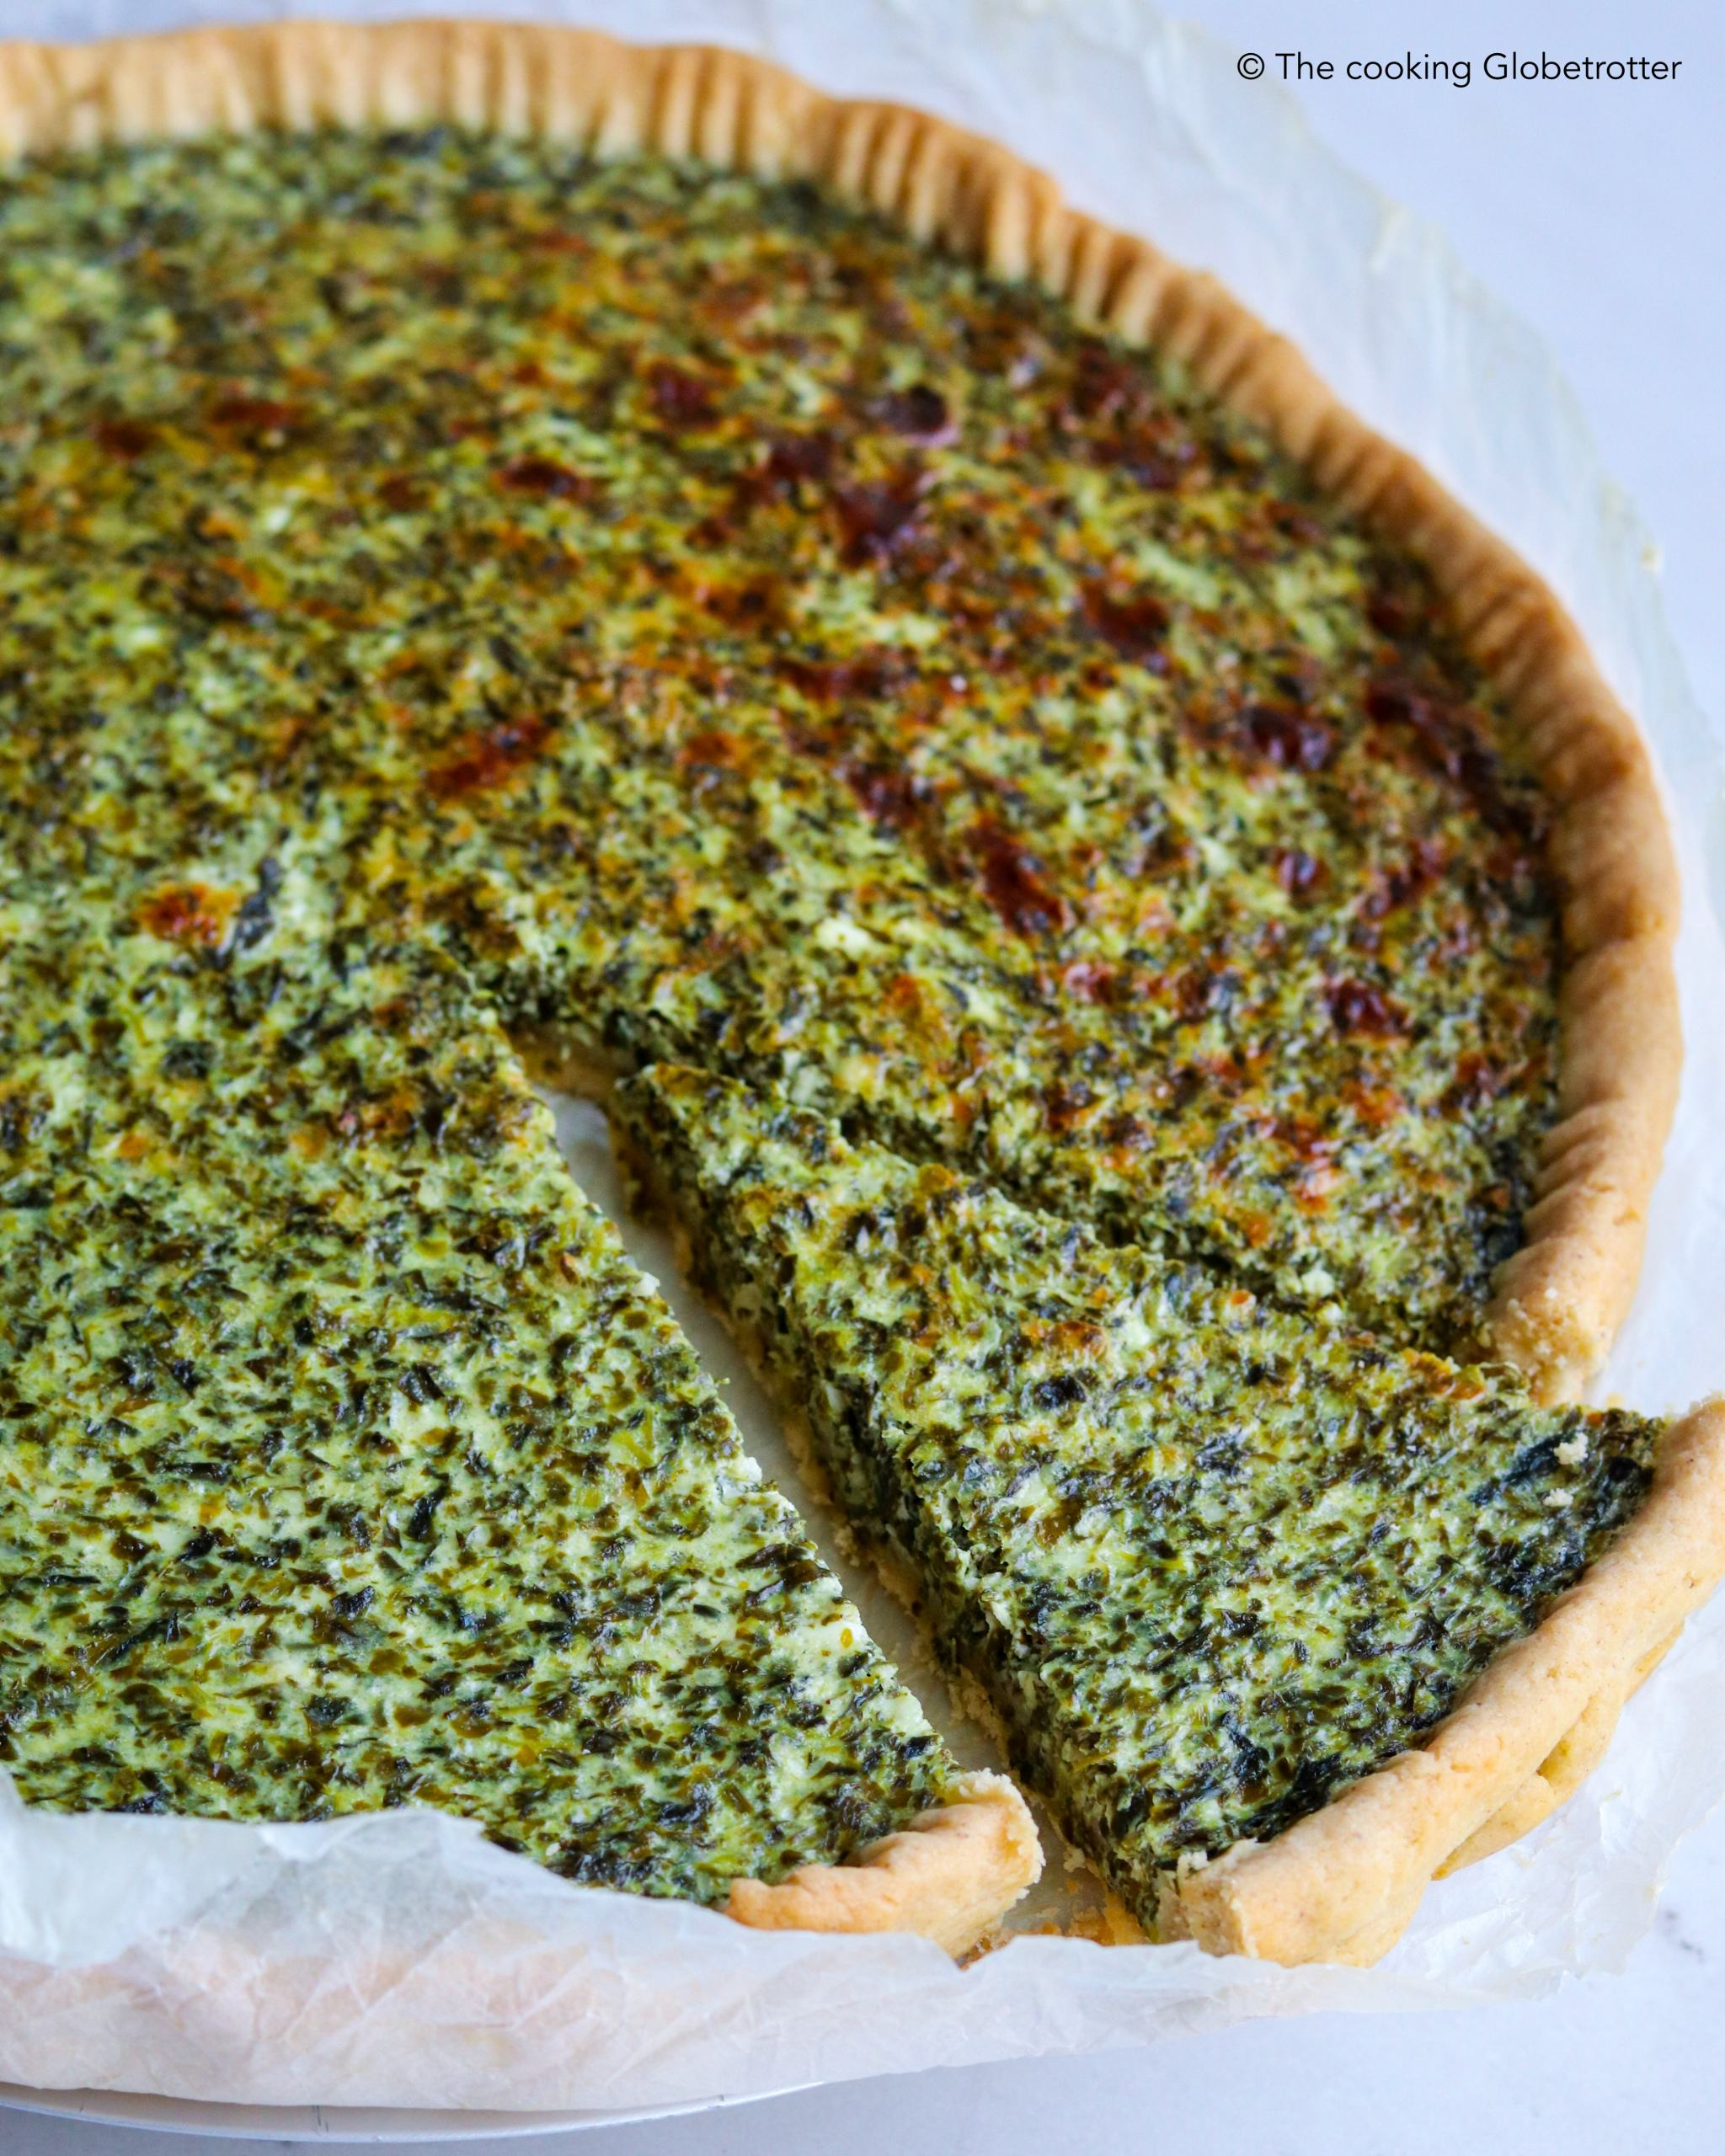 How to bake a quick and healthy quiche ricotta spinach Italian pie